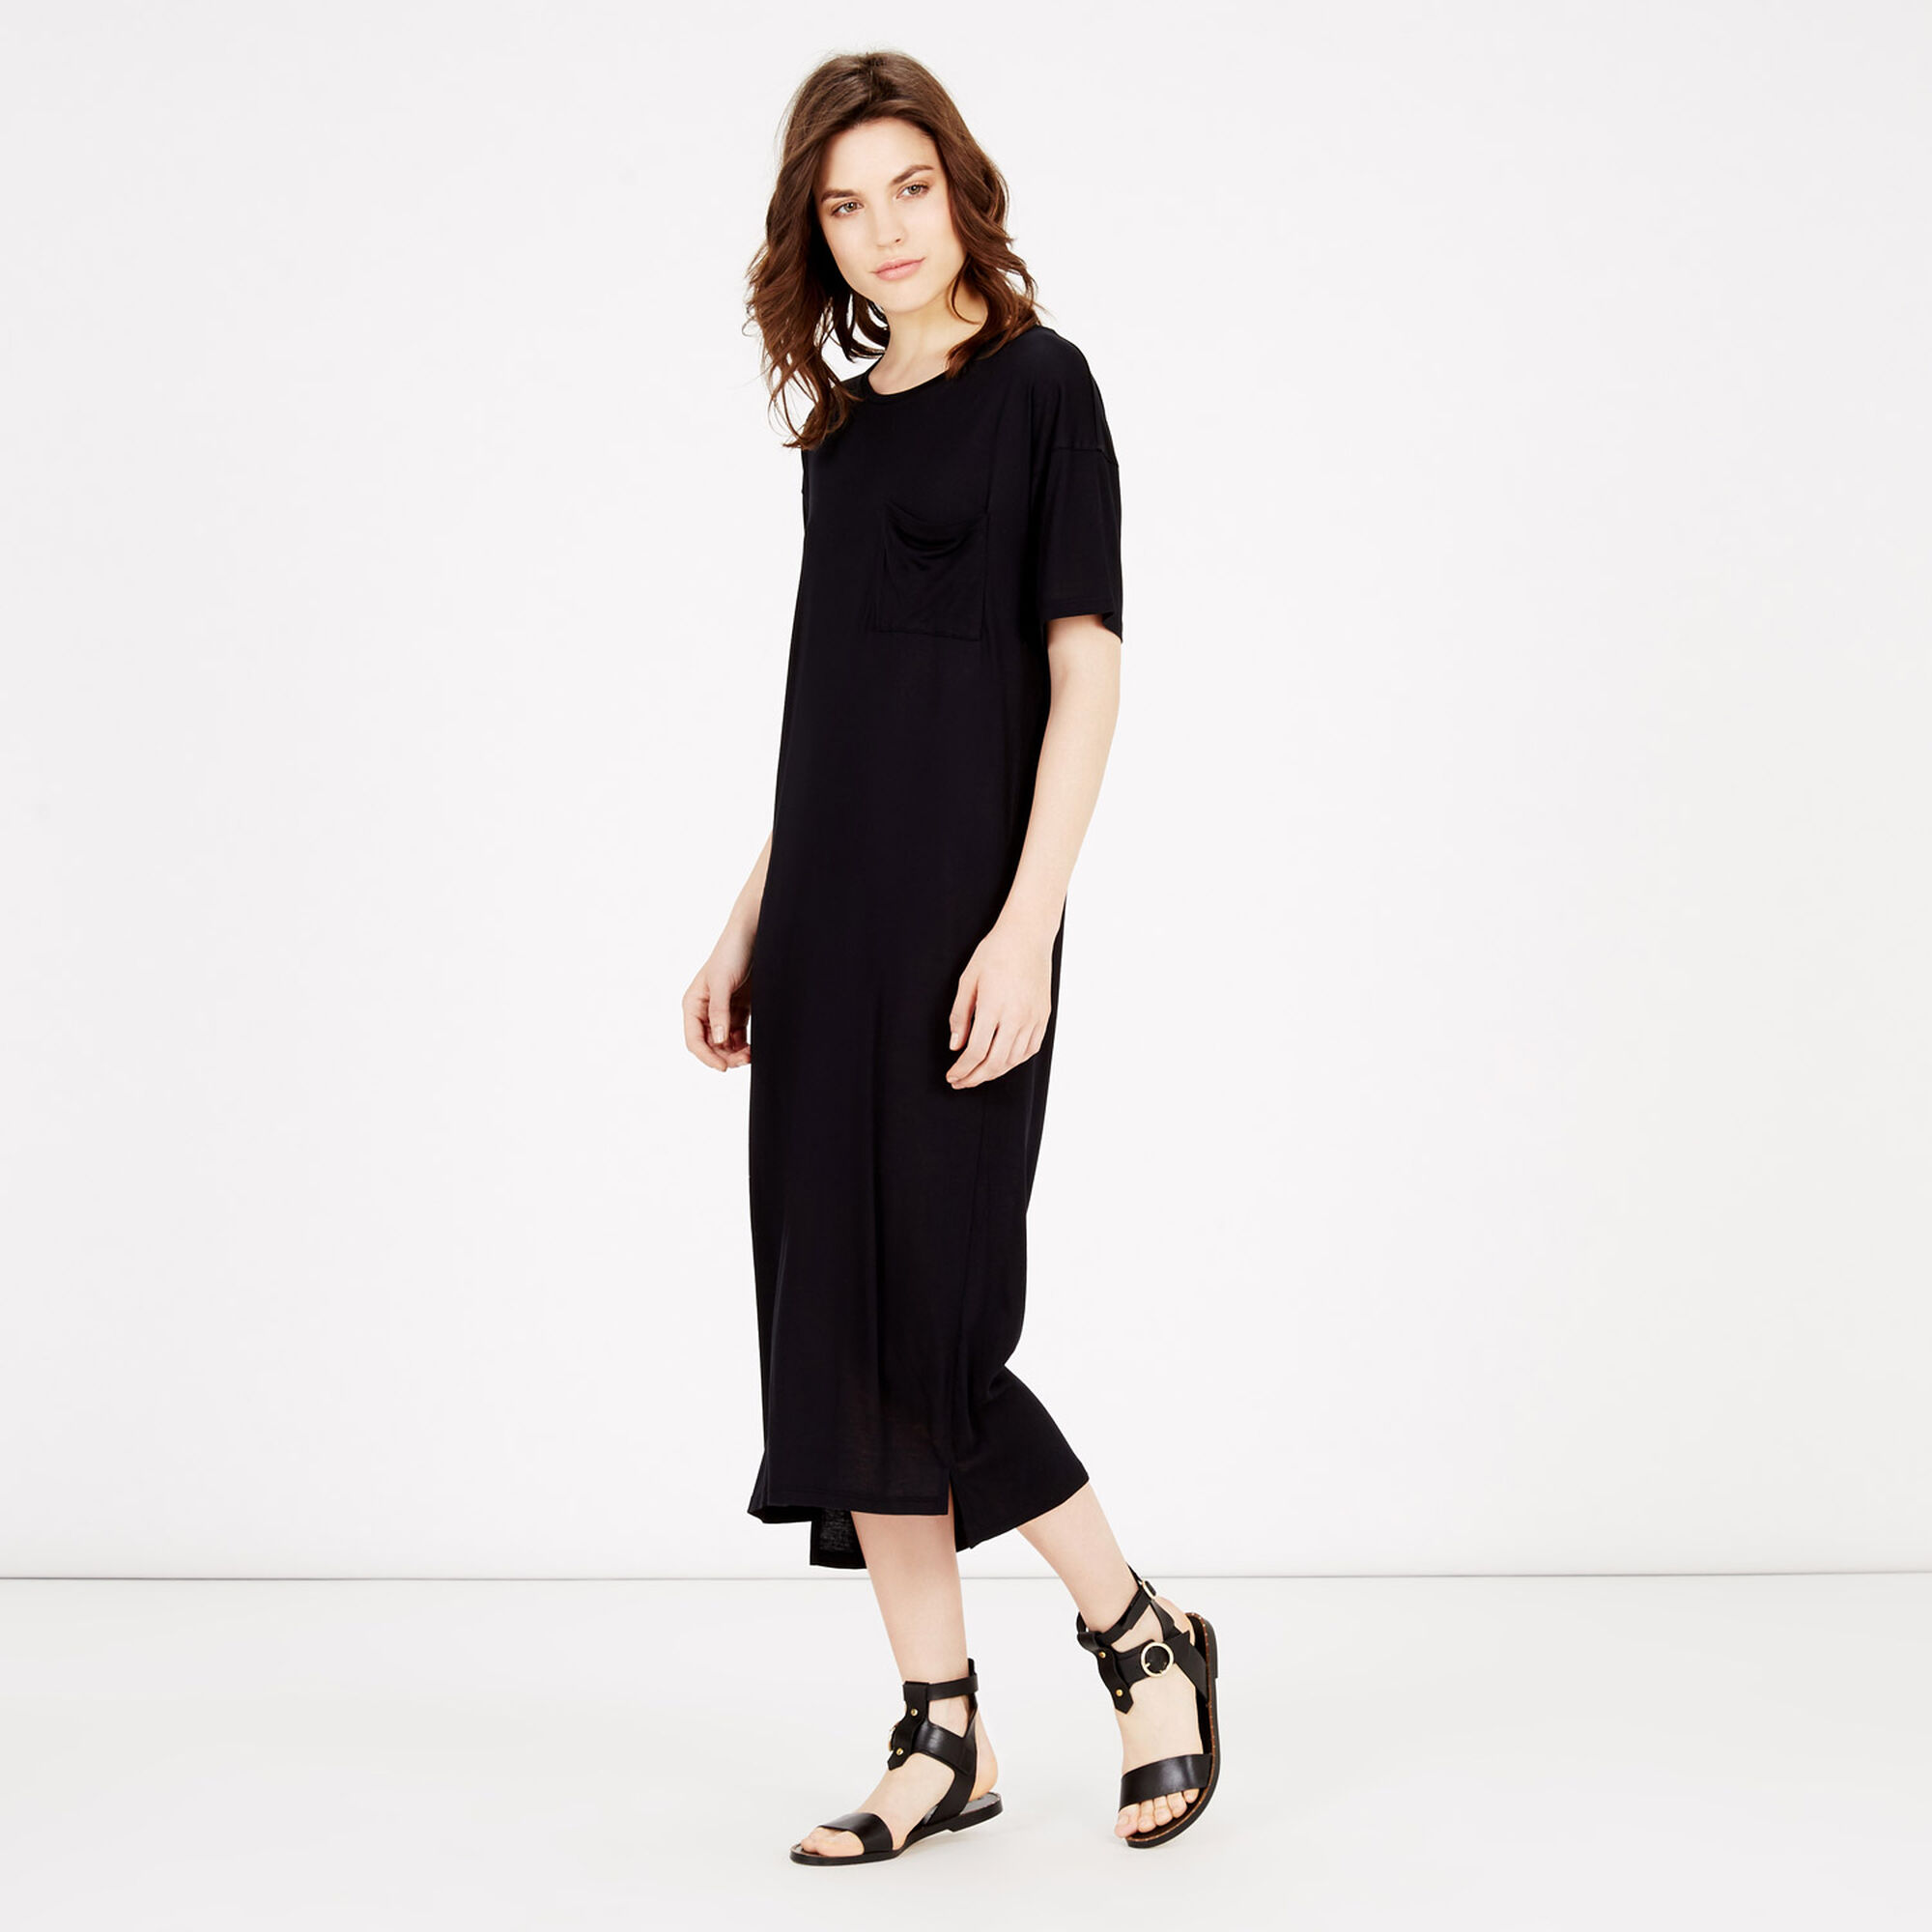 T-Shirt Dresses Go for the ultimate off-duty look in our effortless range of t-shirt dresses, perfect for every occasion. A versatile go-to wardrobe staple that earns easy style points whatever the occasion.